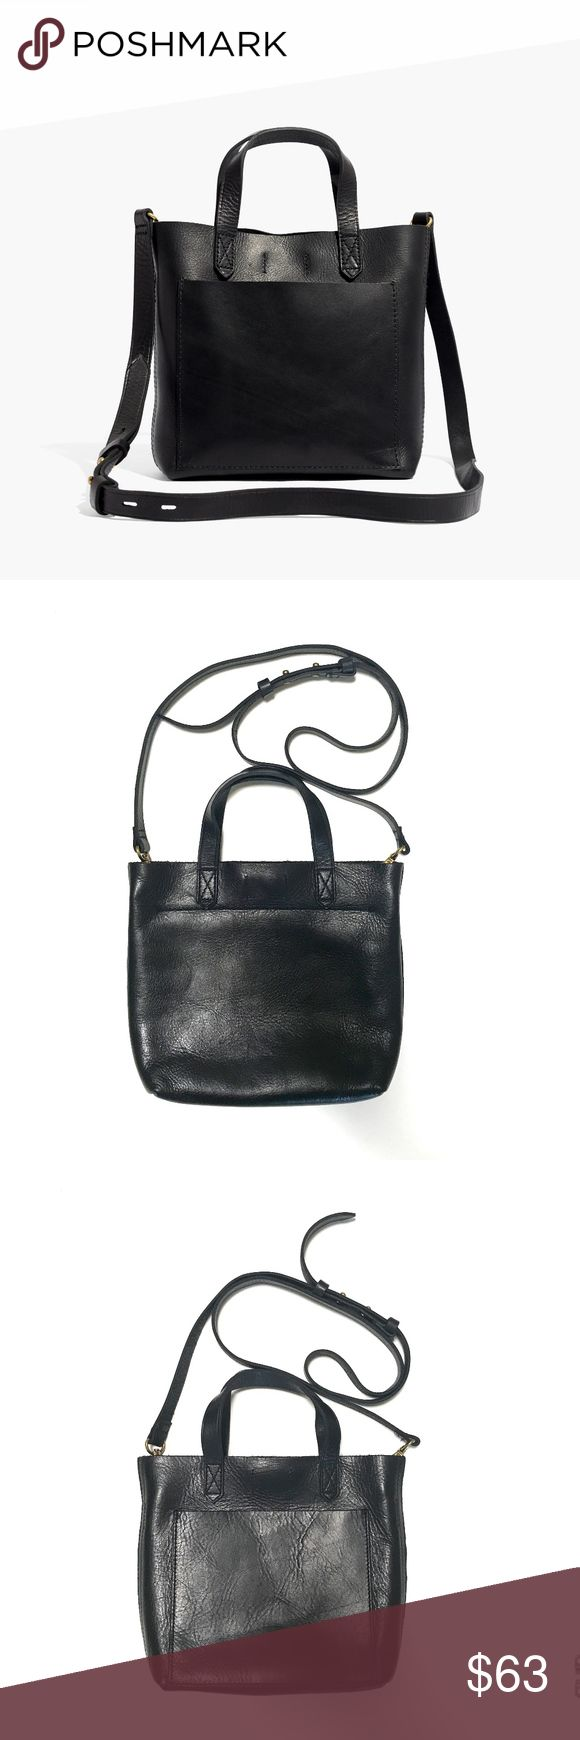 MADEWELL SMALL TRANSPORT CROSSBODY LEATHER COLOR IS TRUE BLACK, VINTAGE GOLD HARDWARE EXCELLENT CONDITION, JUST AS PICTURED - NO EDITS THIS IS A CLASSIC MADEWELL BAG AND COLOR - NEVER GOES ON SALE!  100% LEATHER BE SURE TO CHECK OUT THE PHOTO OF AN ALTERNATE COLOR FOR SIZE REFERENCE! STYLE#G8078 HAPPY TO ANSWER ANY QUESTIONS! Madewell Bags Crossbody Bags